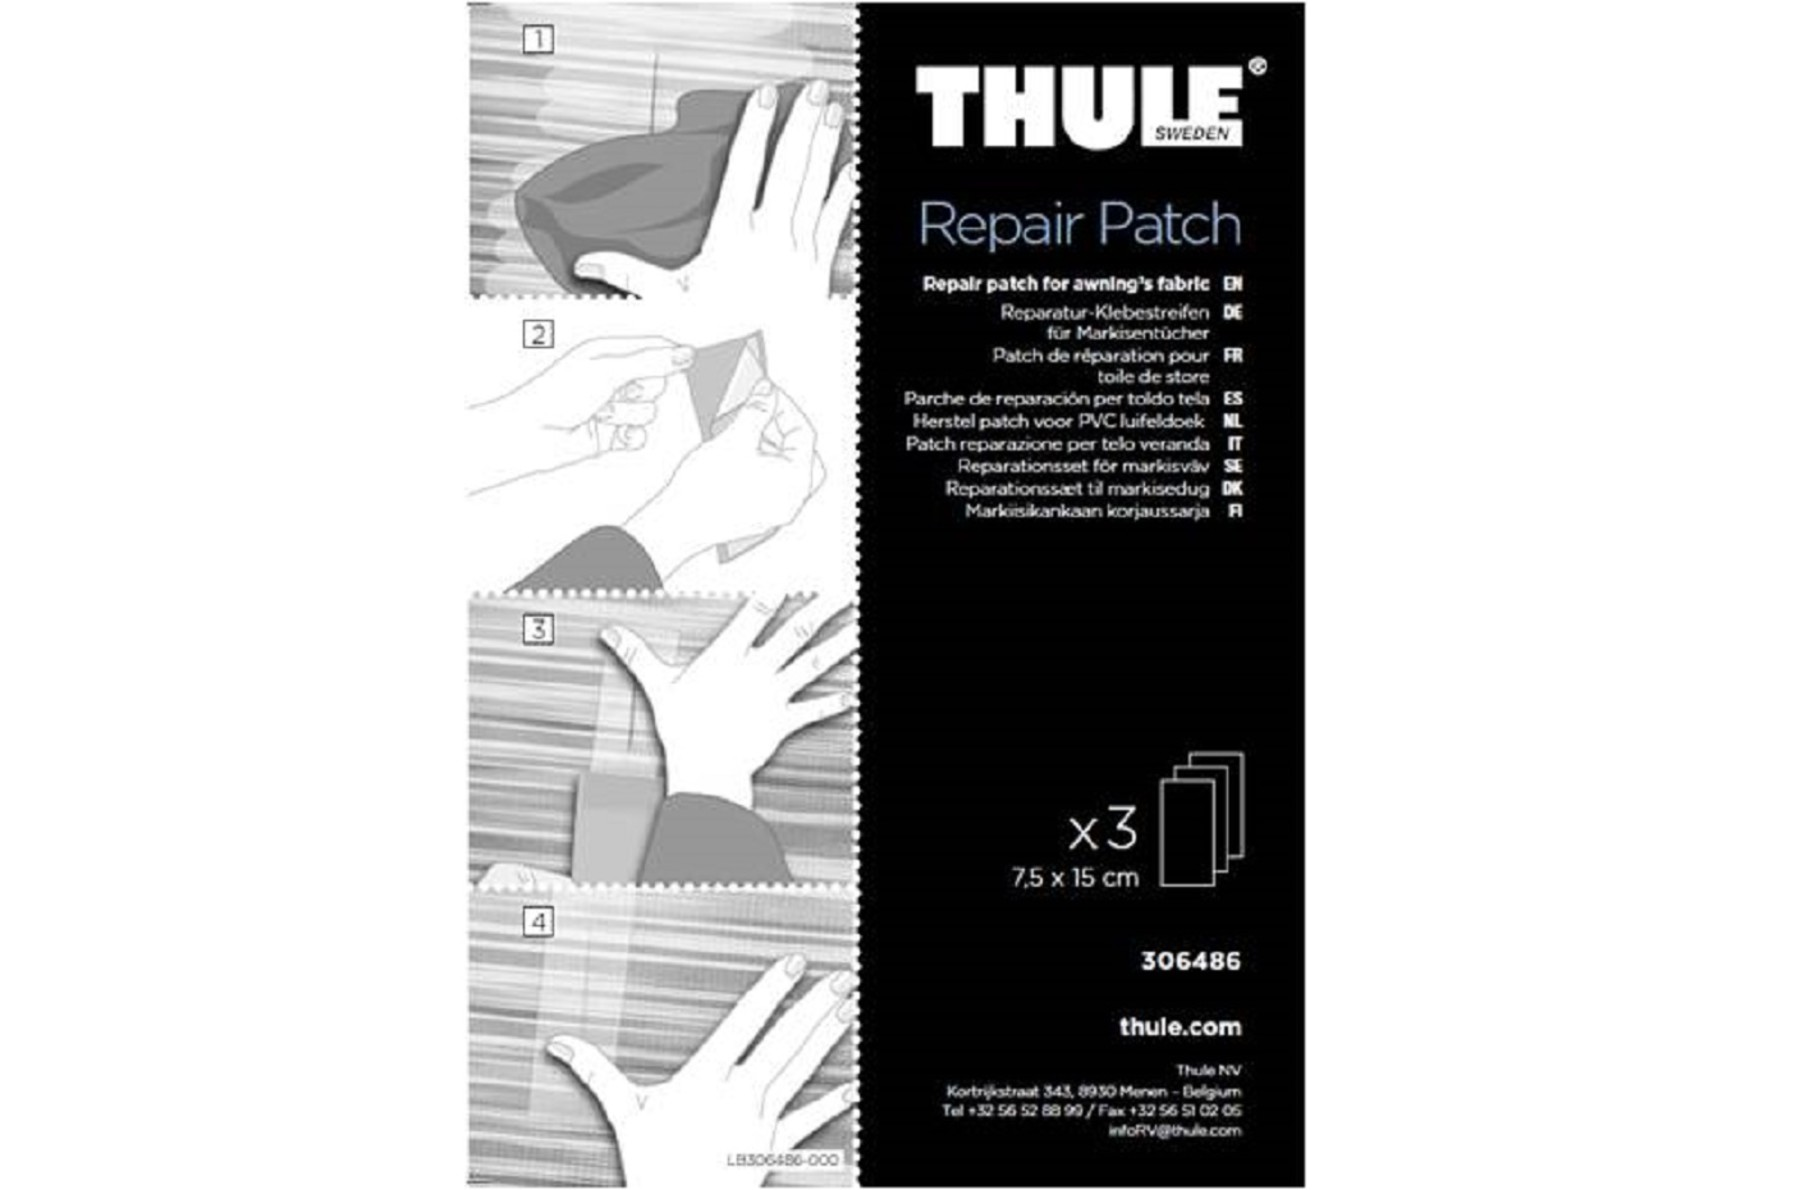 Thule Repair Patch, markisevedligeholdelse